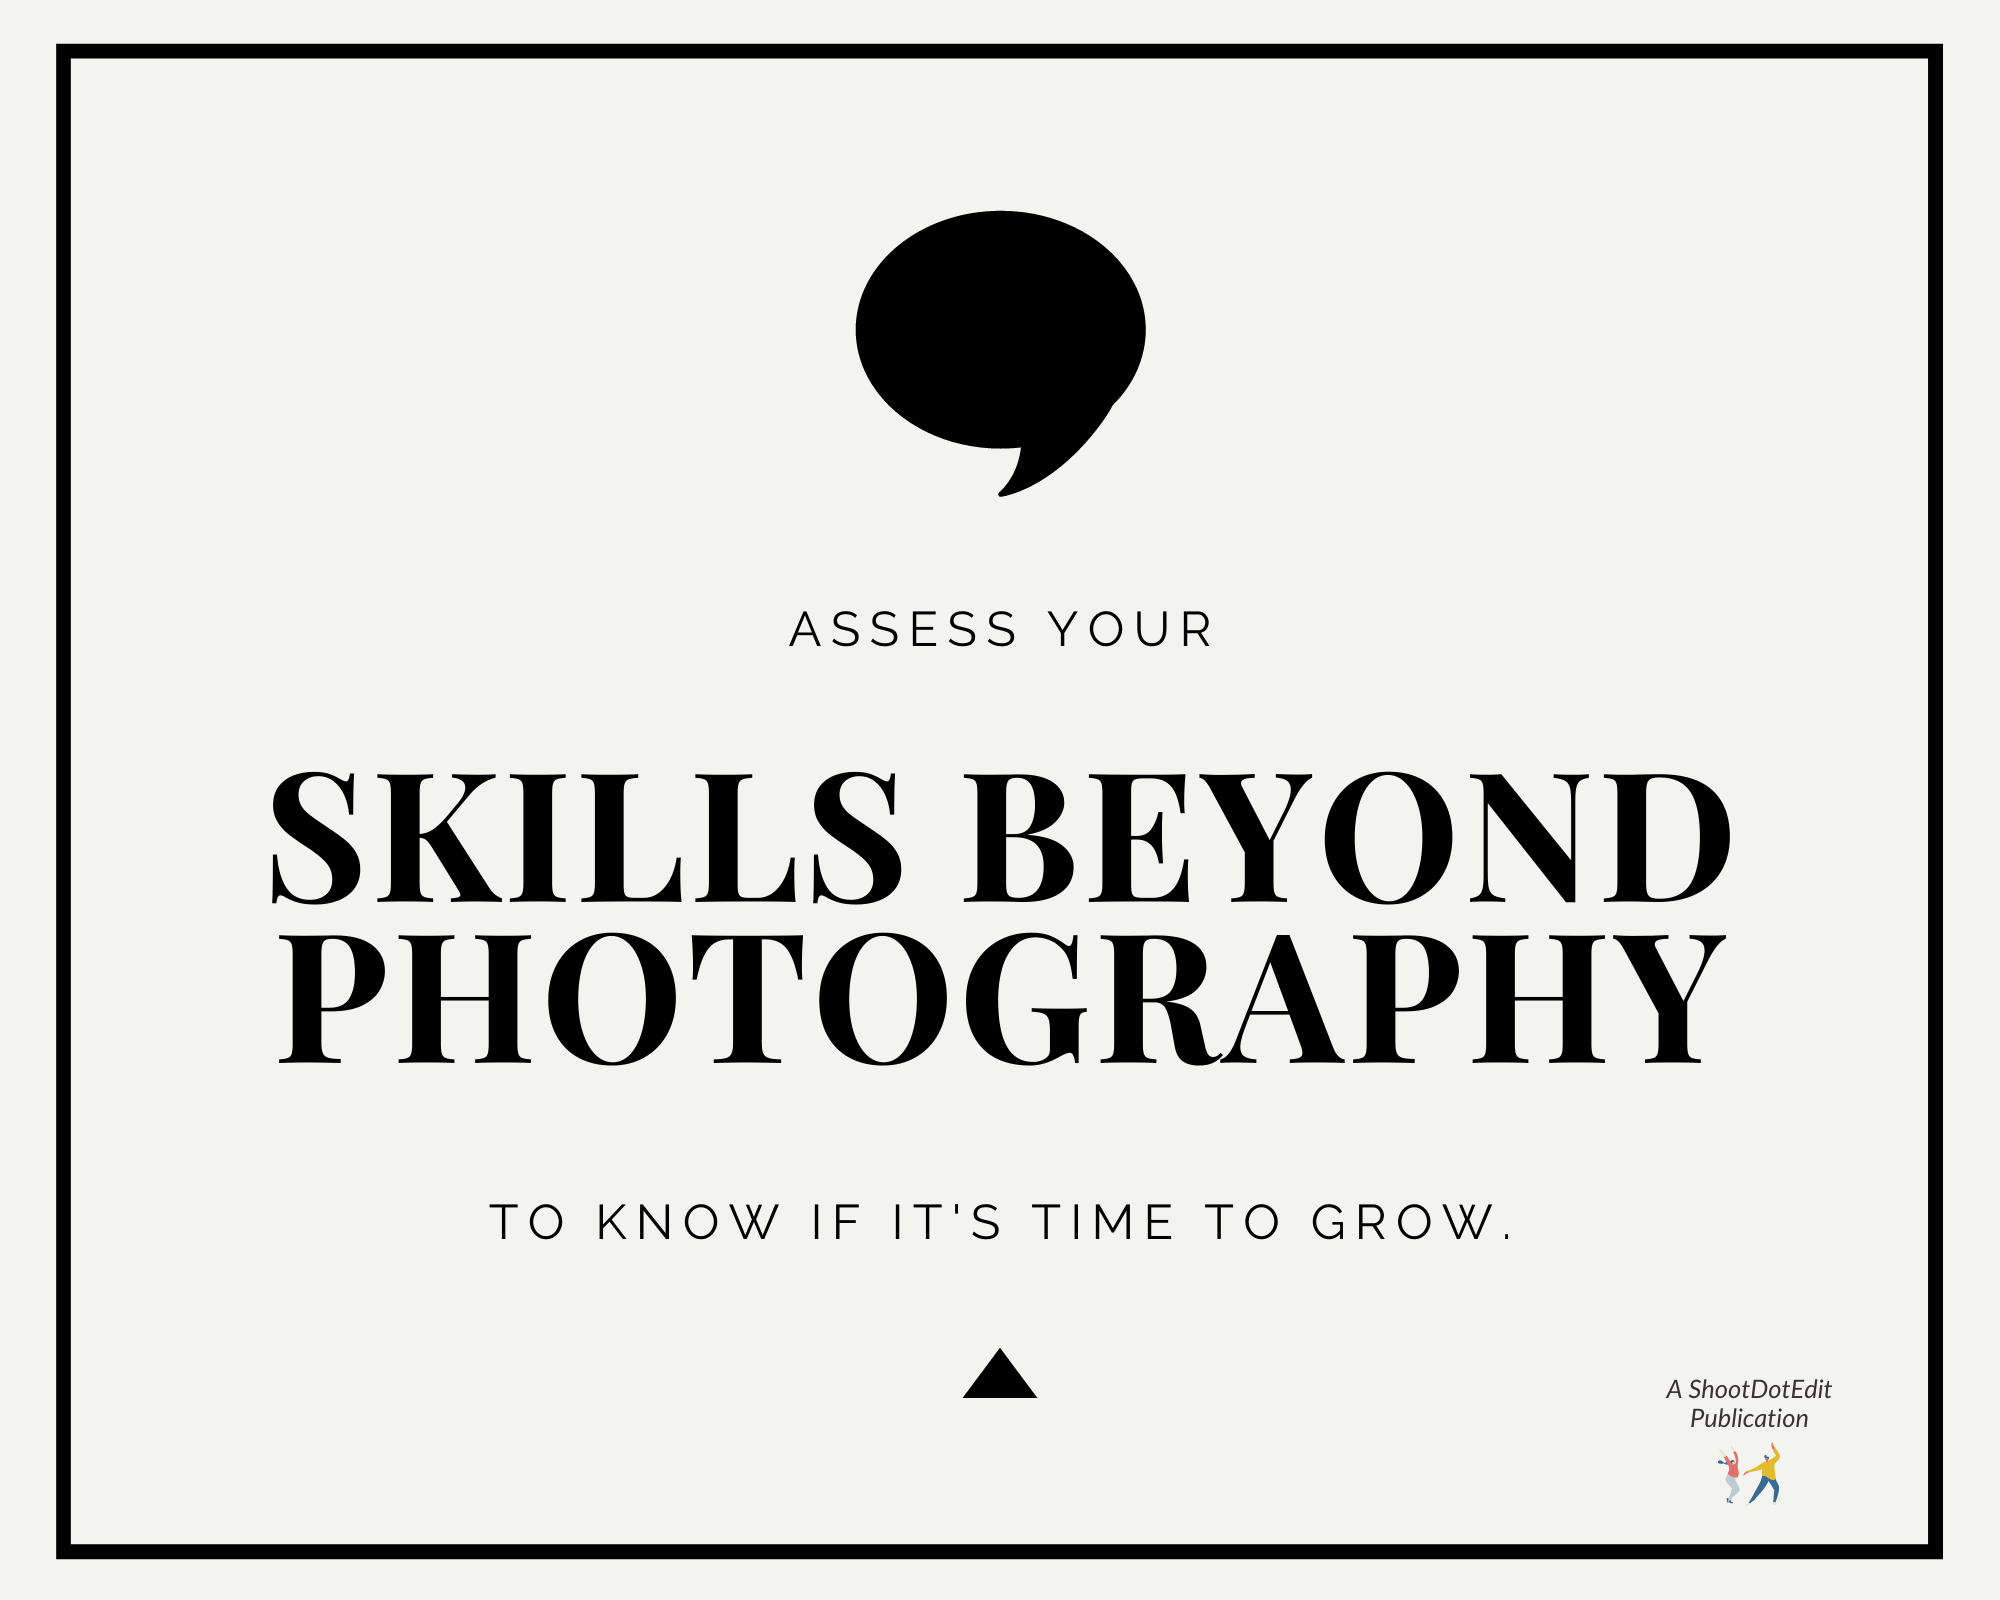 Infographic - Assess your skills beyond photography to know if it's time to grow